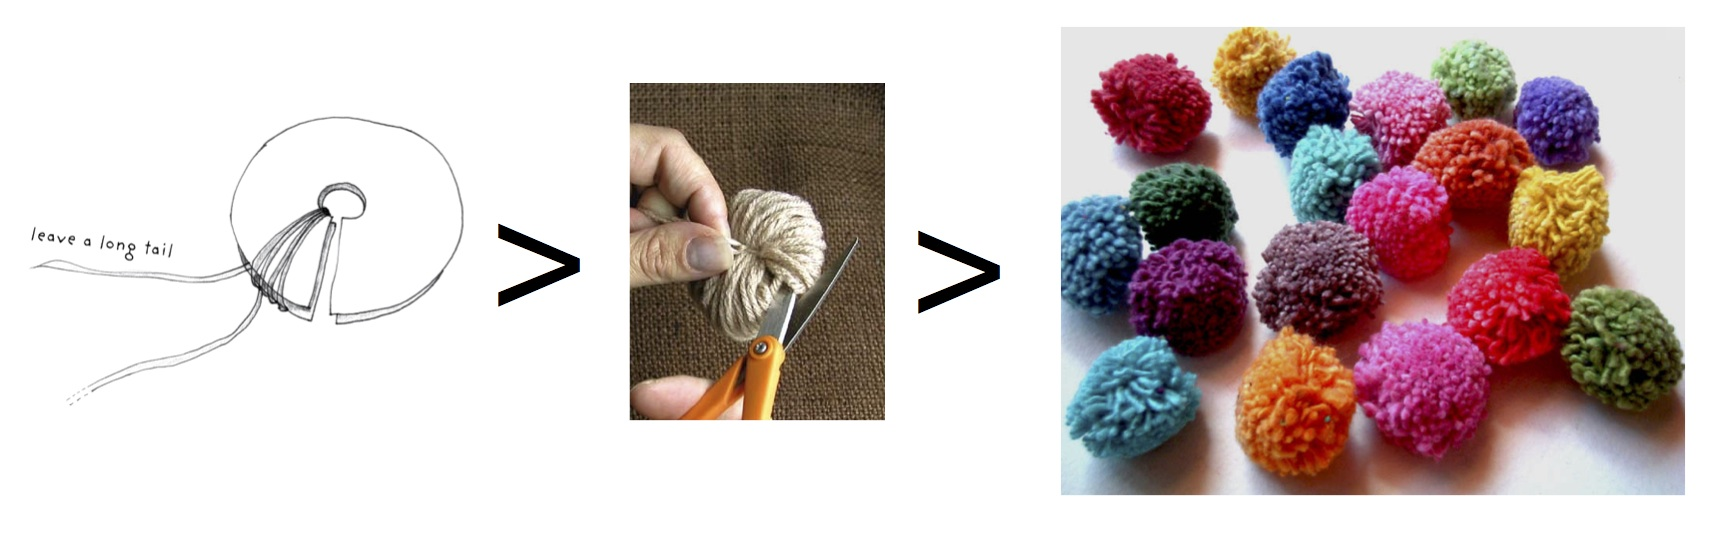 How to make a pom pom, using a cardboard ring and some wool